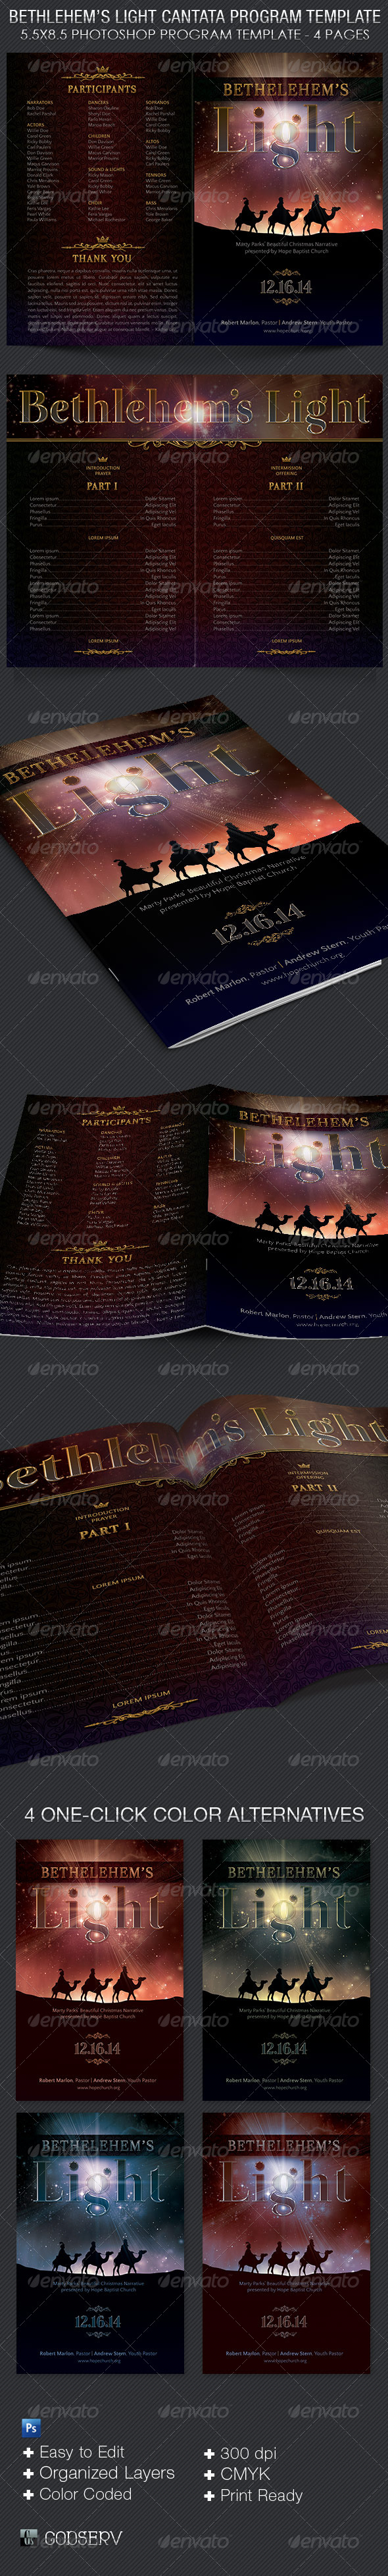 Bethlehem's Light Cantata Program Template  - Brochures Print Templates